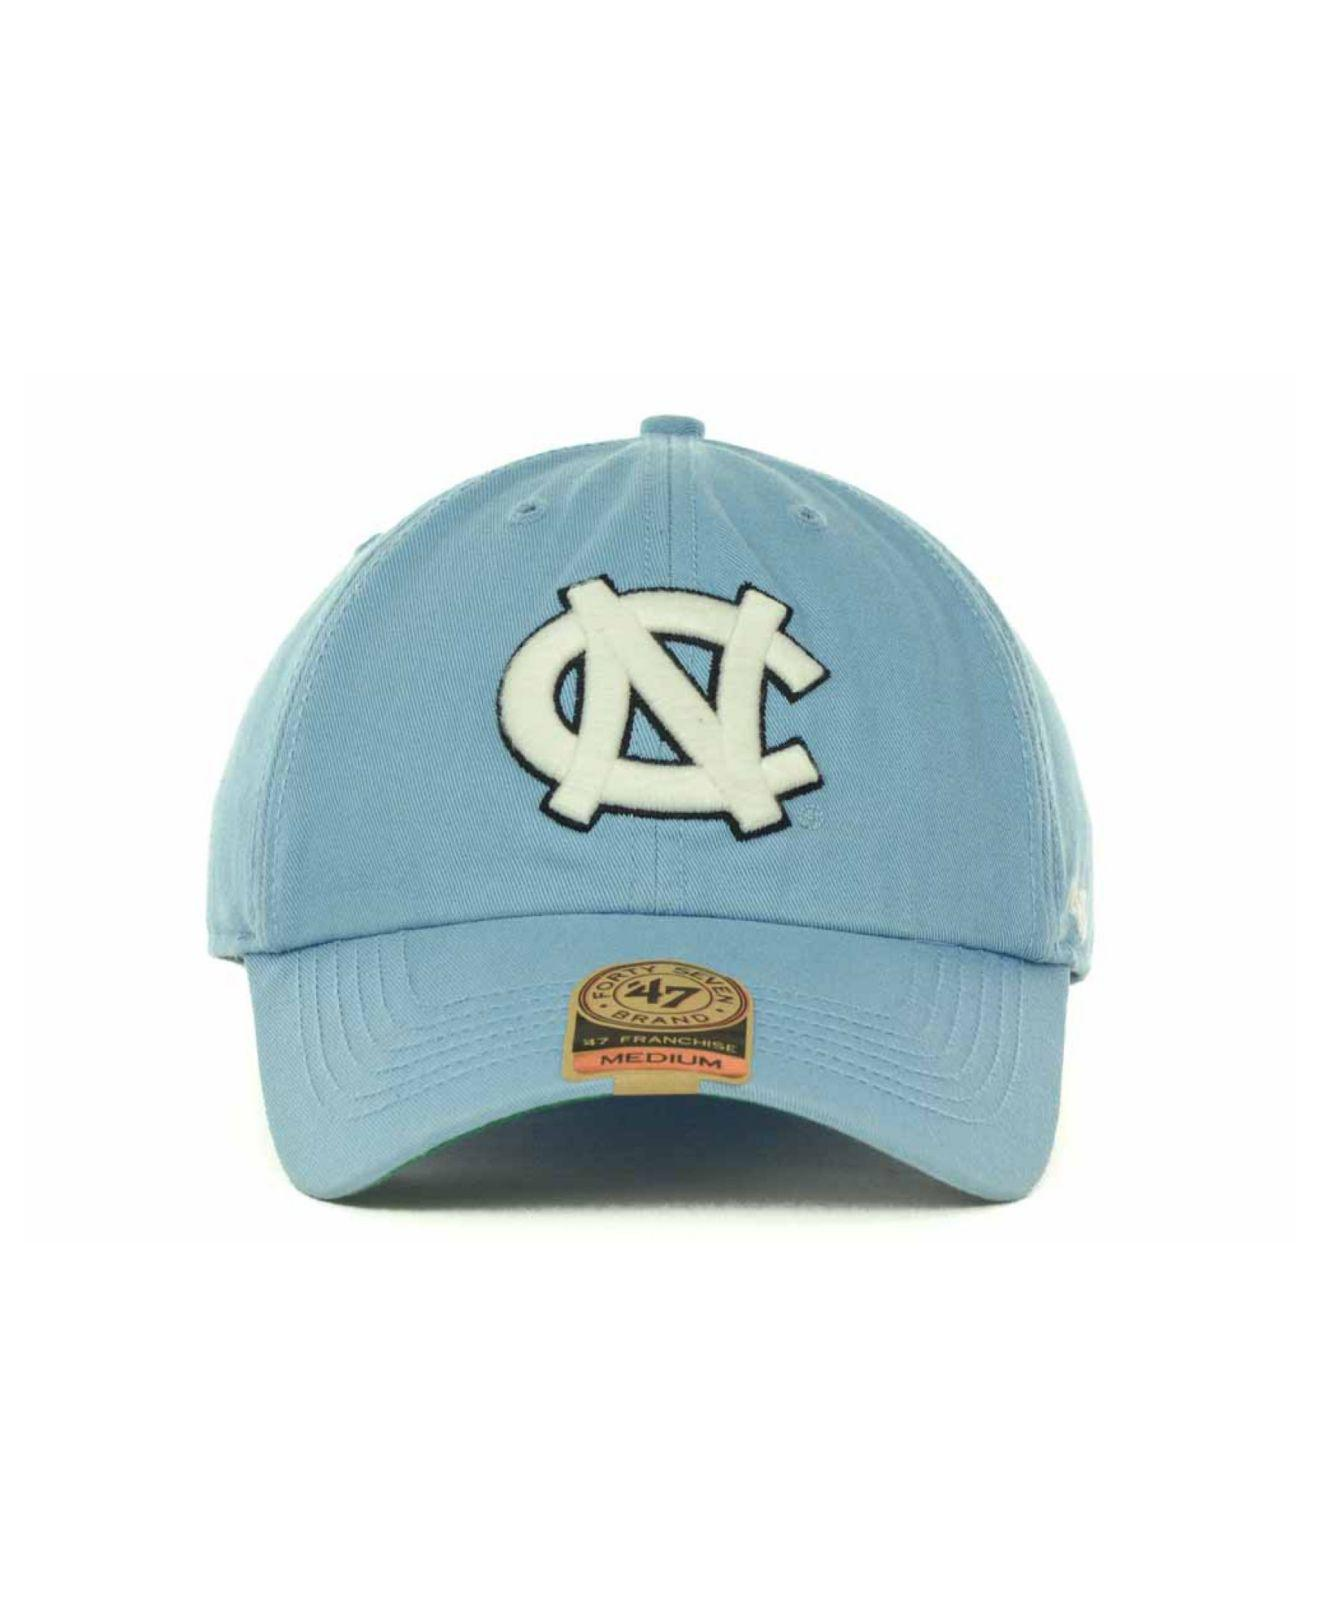 new product 9b134 ee0f4 ... official store lyst 47 brand north carolina tar heels franchise cap in  blue for men b9c3e